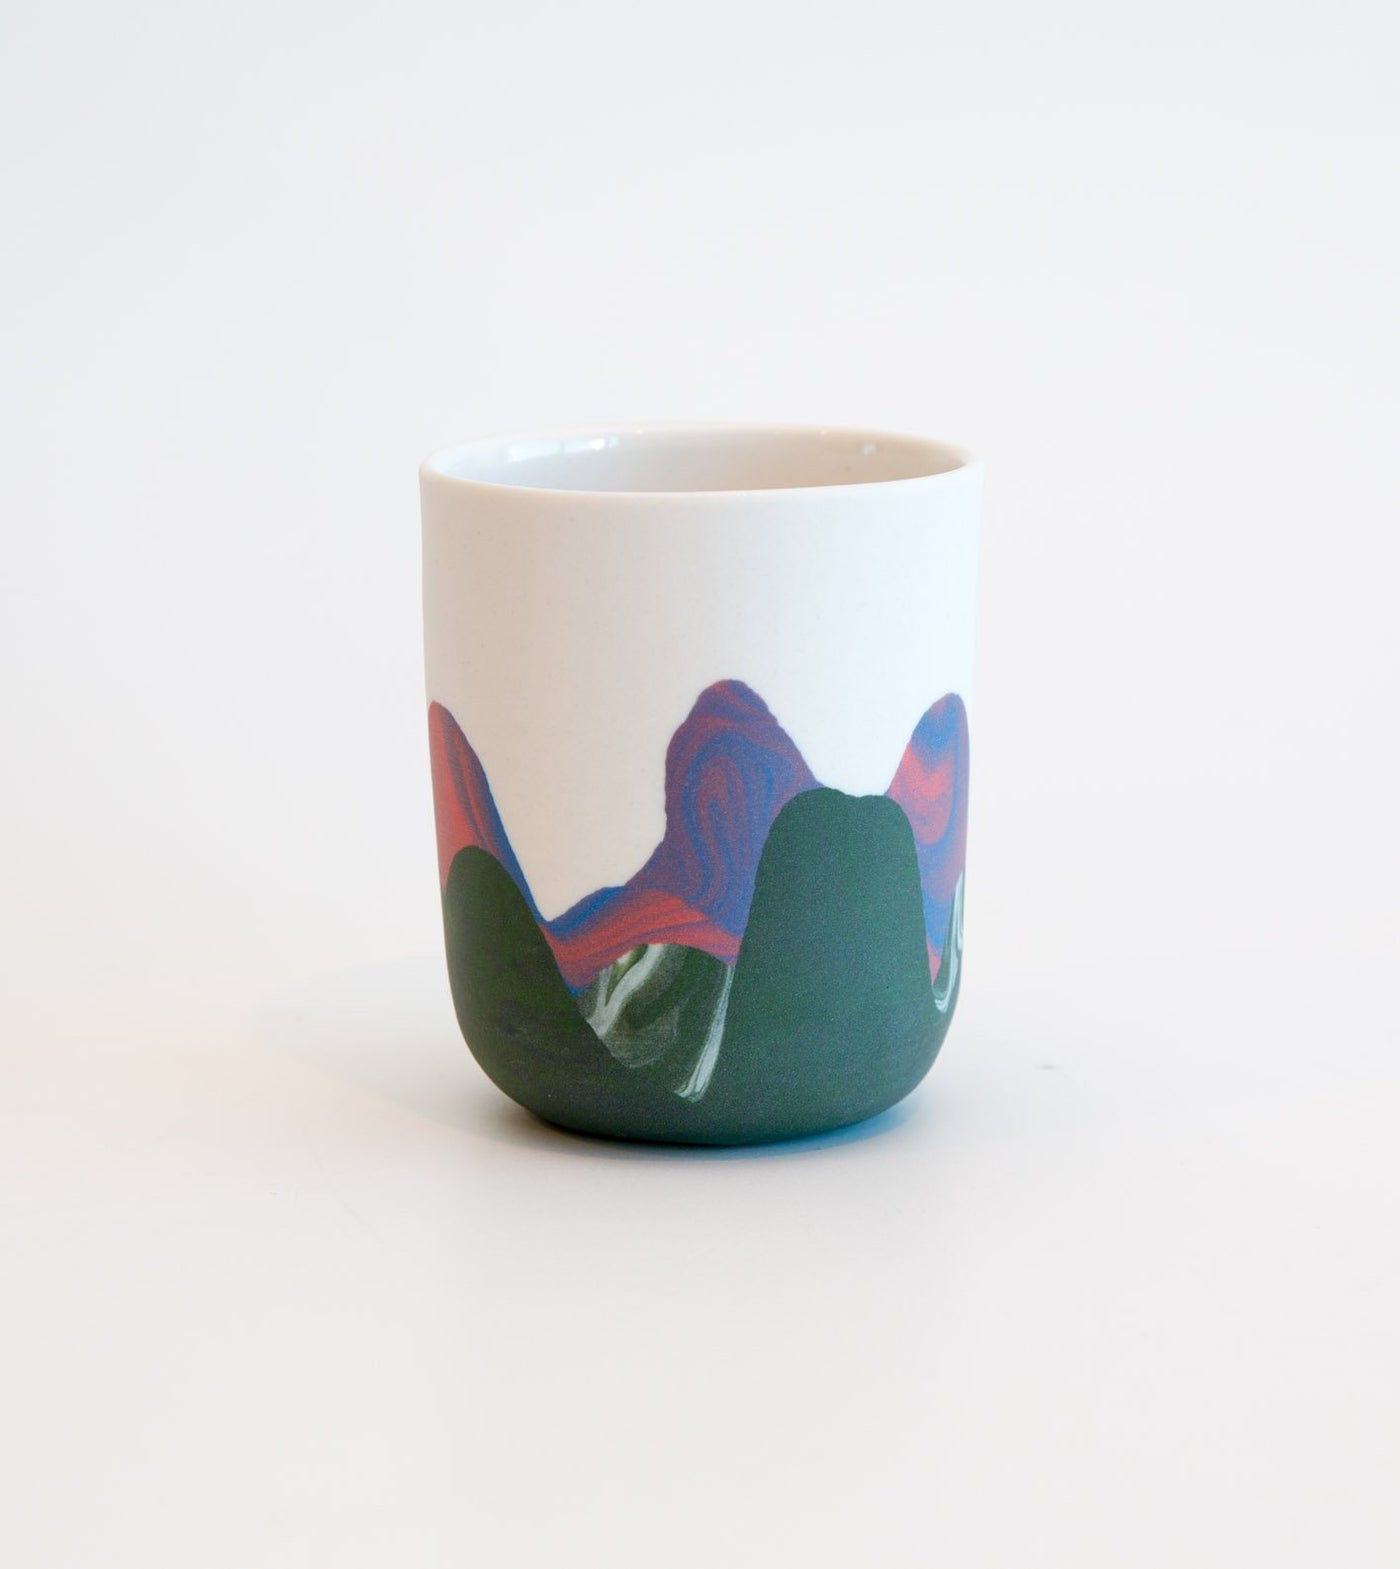 latte cup, coffee mug, RL Foote ceramics, Melbourne made ceramics, ceramic coffee cup, unique cup